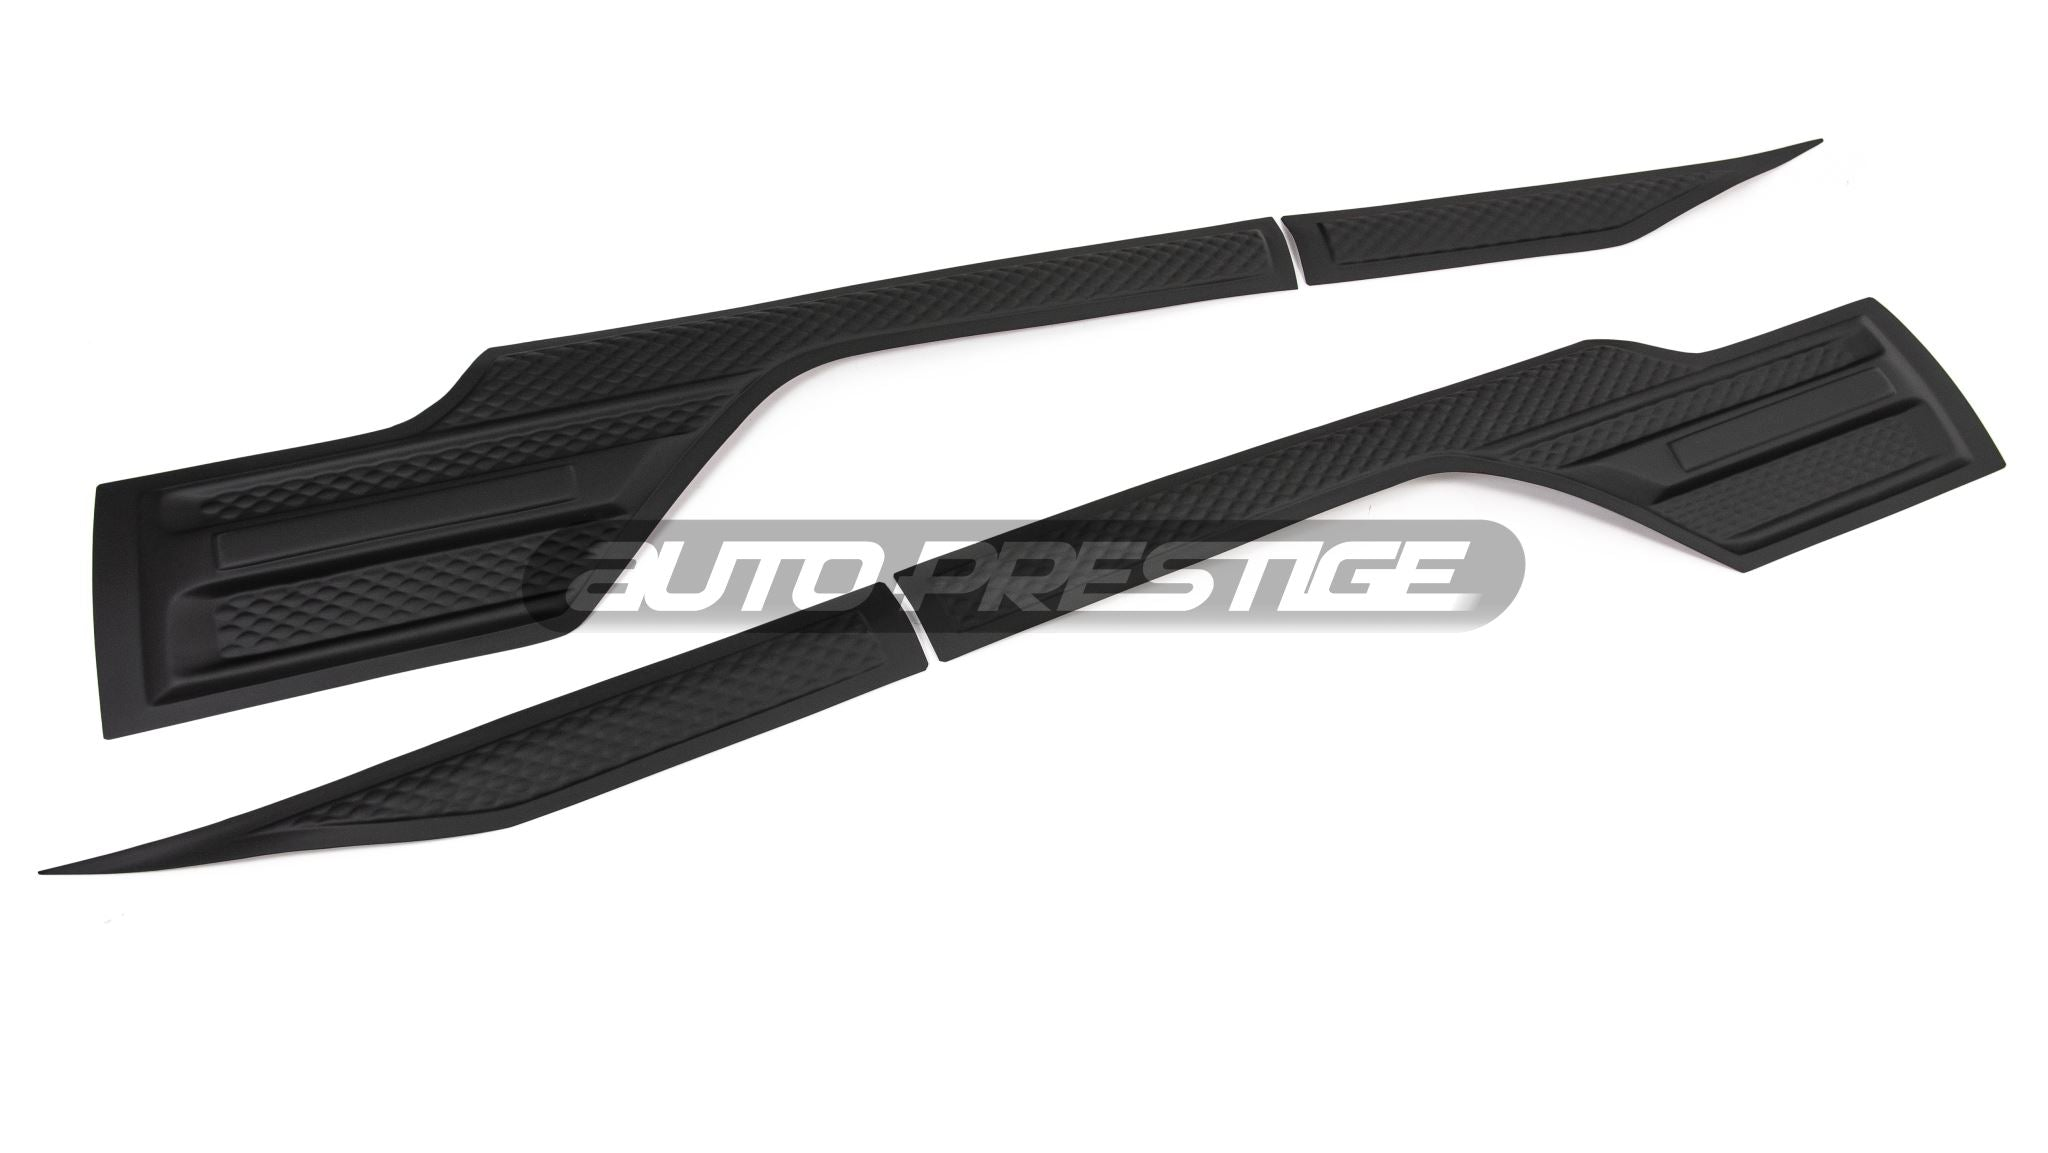 upper-door-cladding--ford-ranger-2012-2015-2019-px1-px2-px3-t6-t7-t8--01_RZW65UG2Y5ZN.jpg